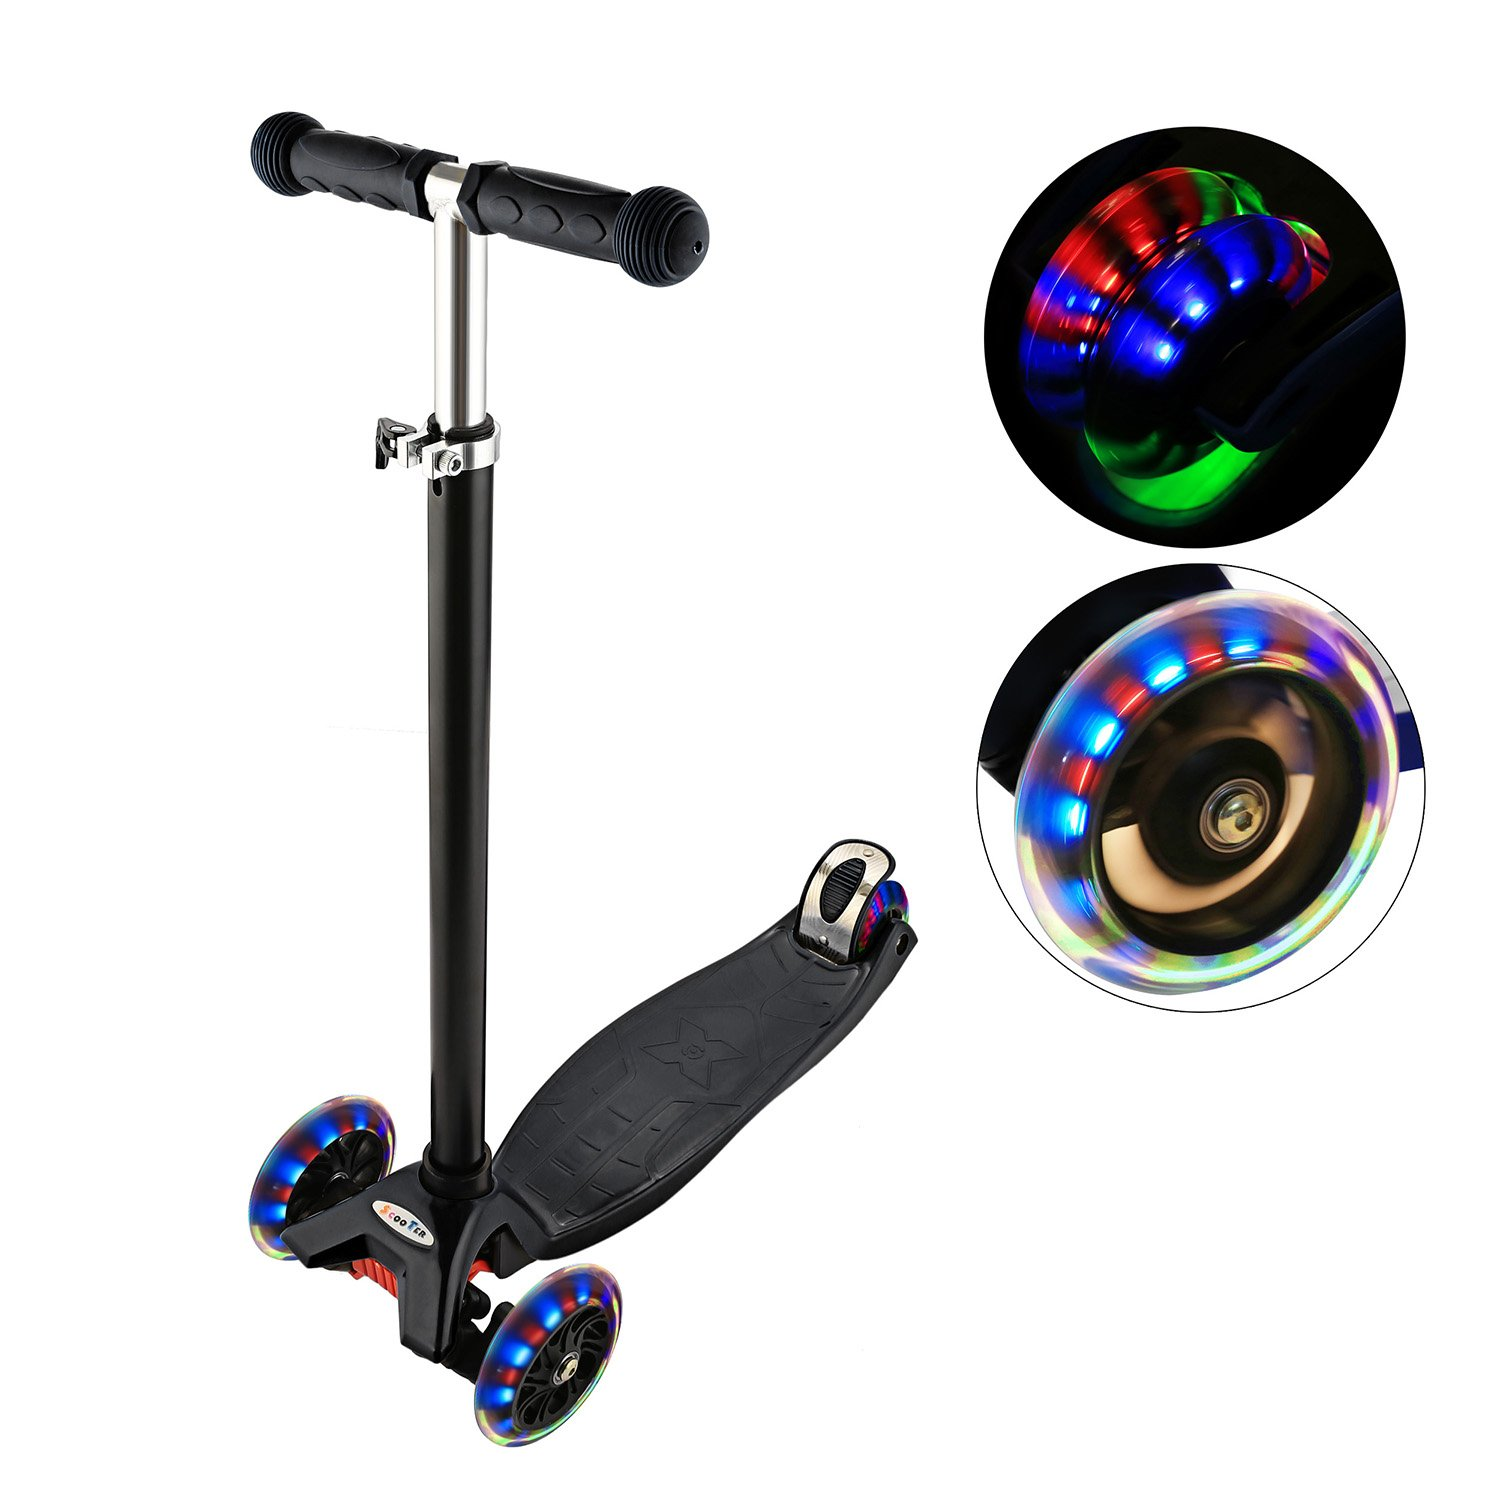 c7aed5948494 ANCHEER Kick Scooter for Kids 3 Wheels, Adjustable Height Kids Scooter LED  Light Flashing PU Wheels, Scooter for Boys and Girls 3-12 MG